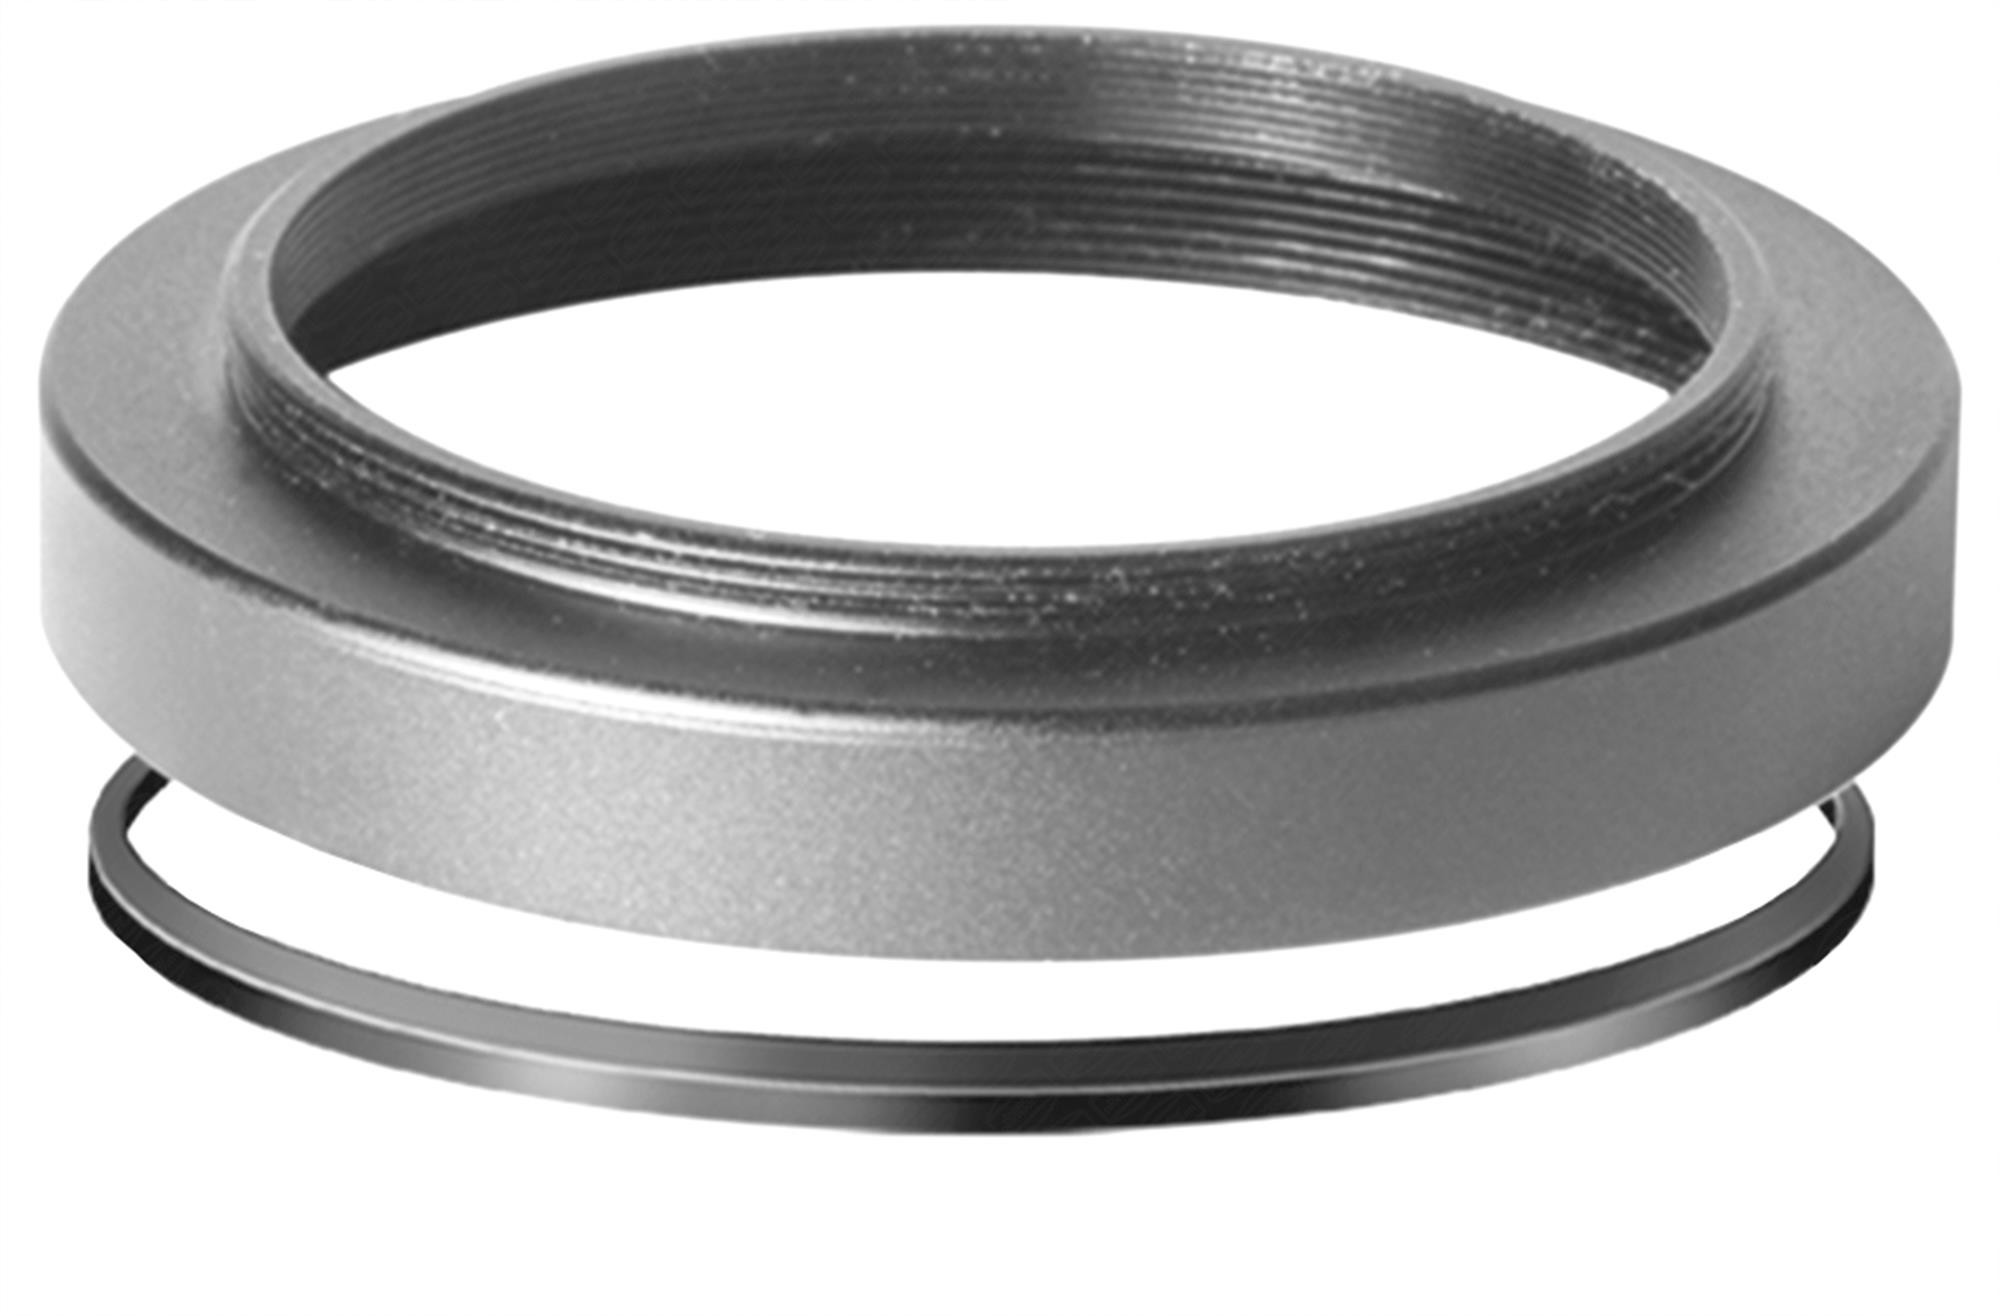 Baader Hyperion DT-Ring SP54/M46 for DTAdapter II&III and Hyperion Eyepieces